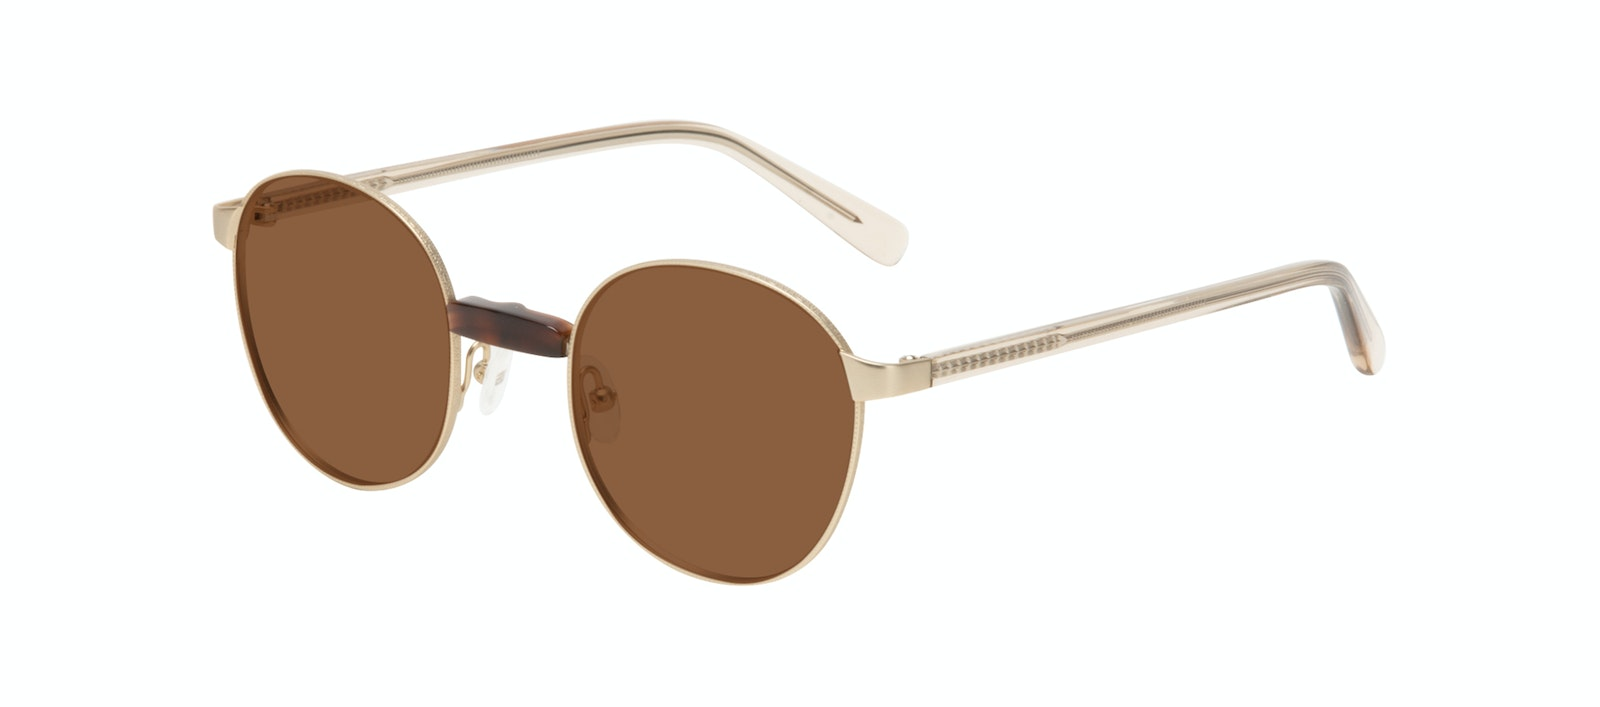 Affordable Fashion Glasses Round Sunglasses Women Curious Gold Tilt